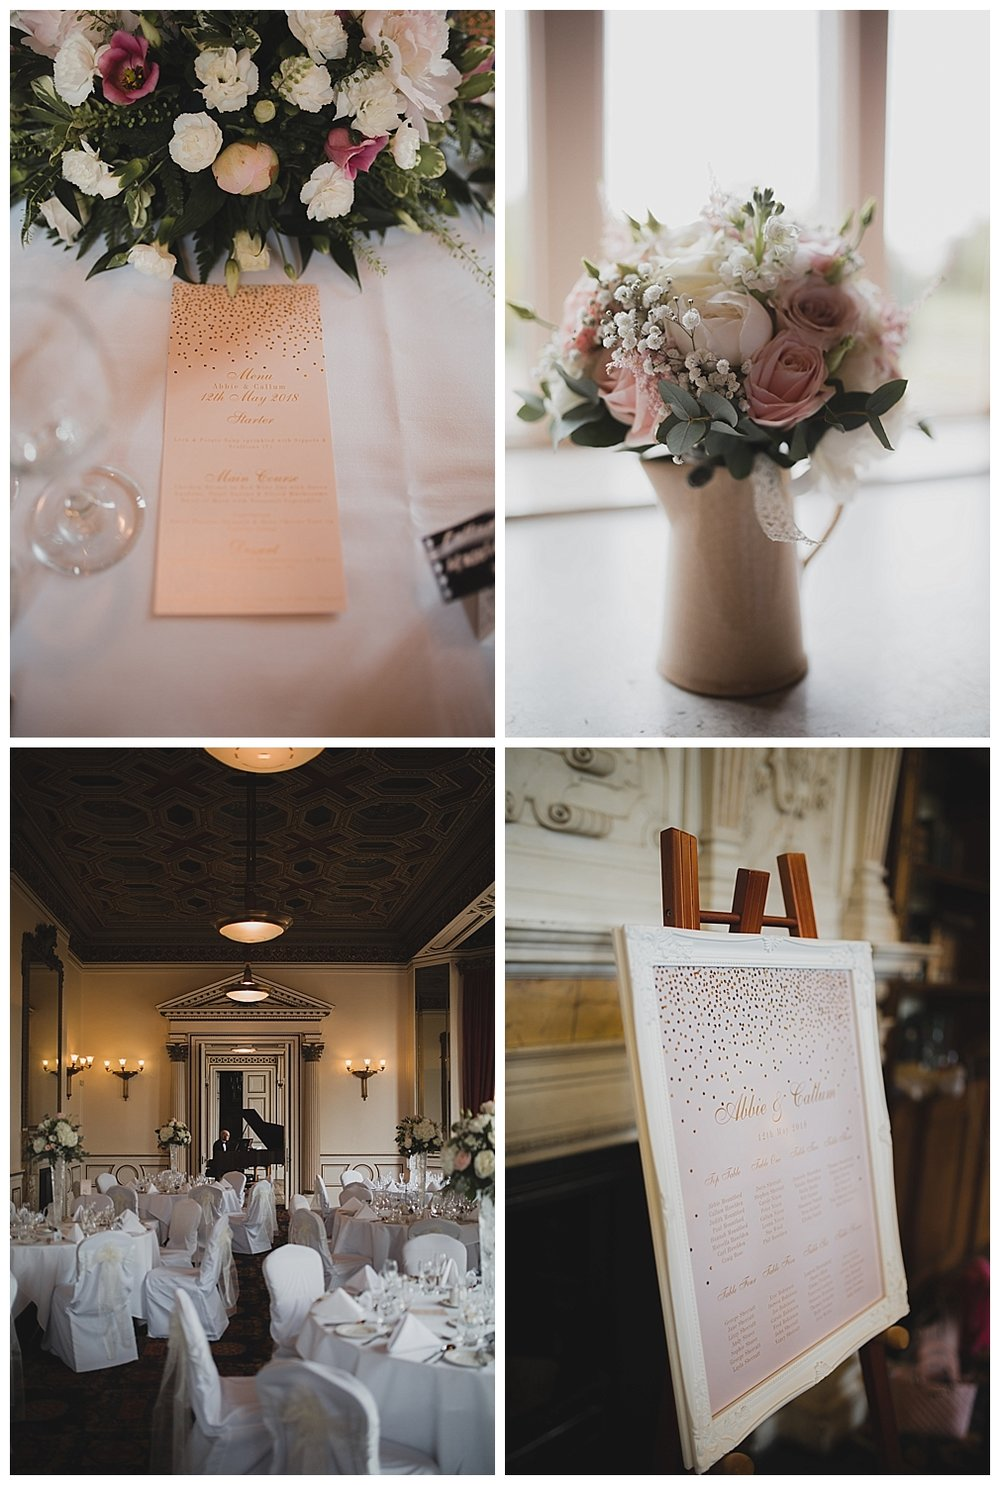 Reception details at this Keele Hall wedding.